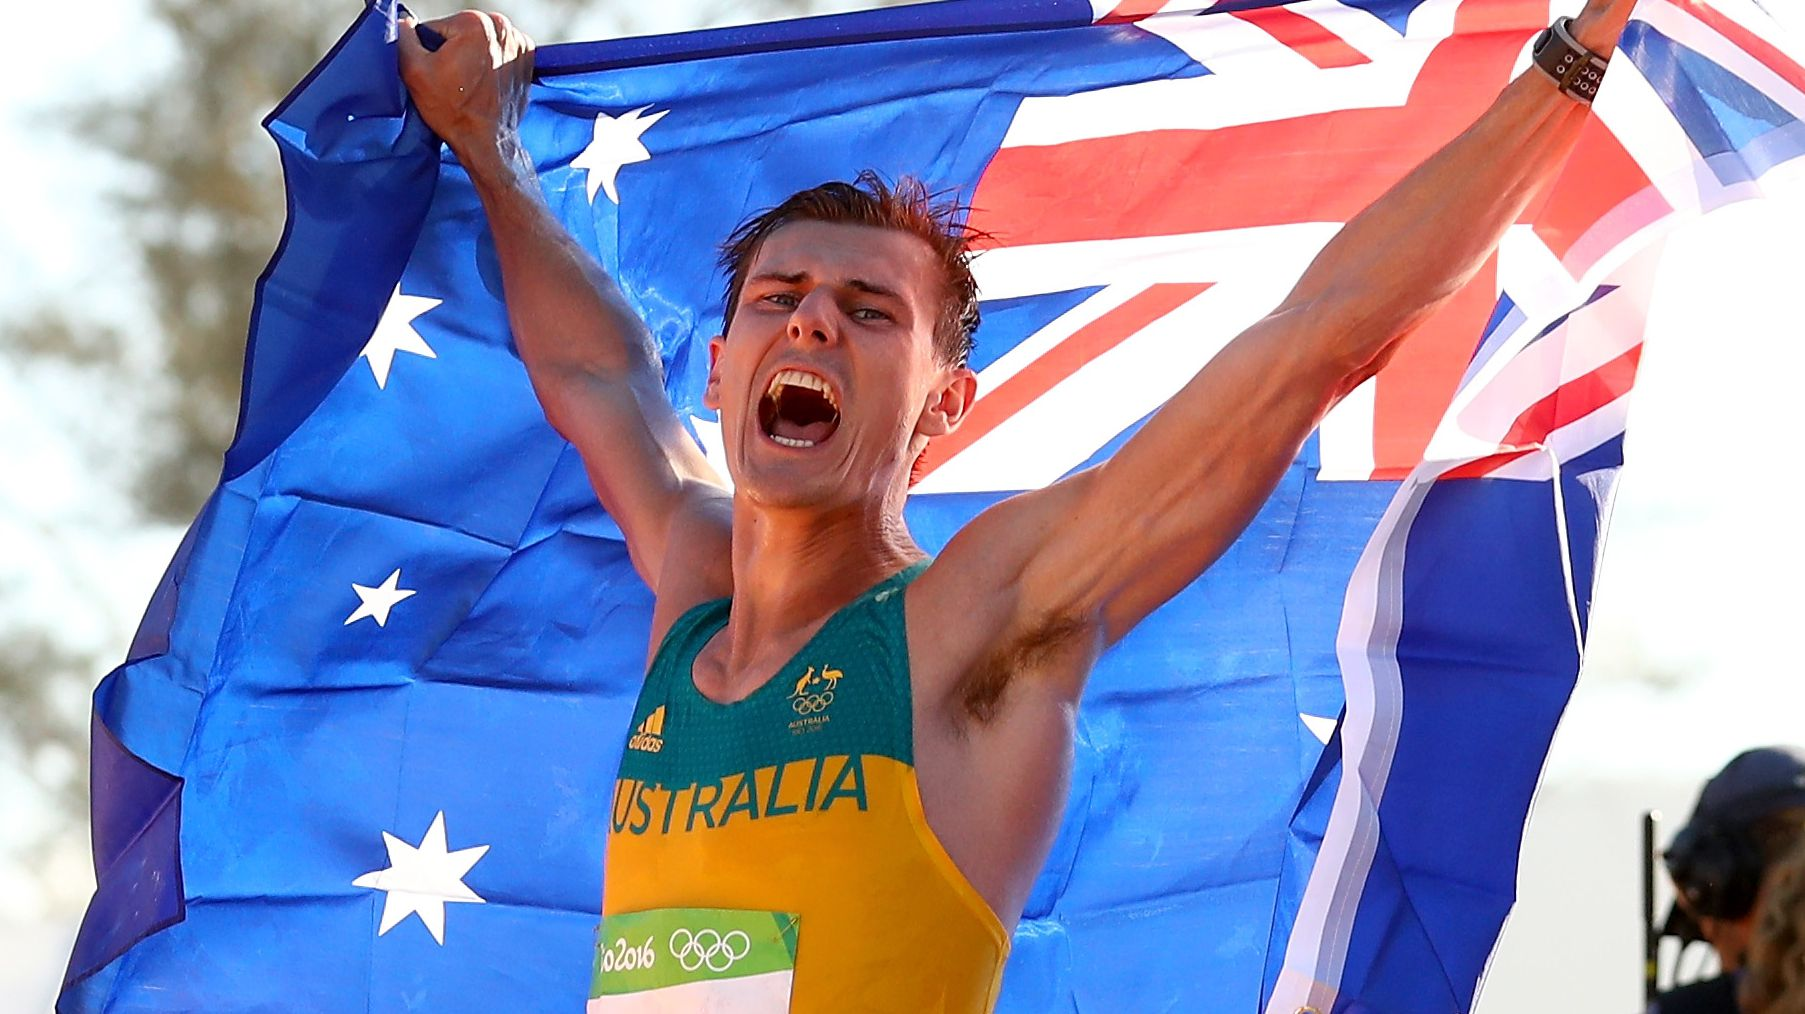 Aussie medallist quits Olympic team at last minute